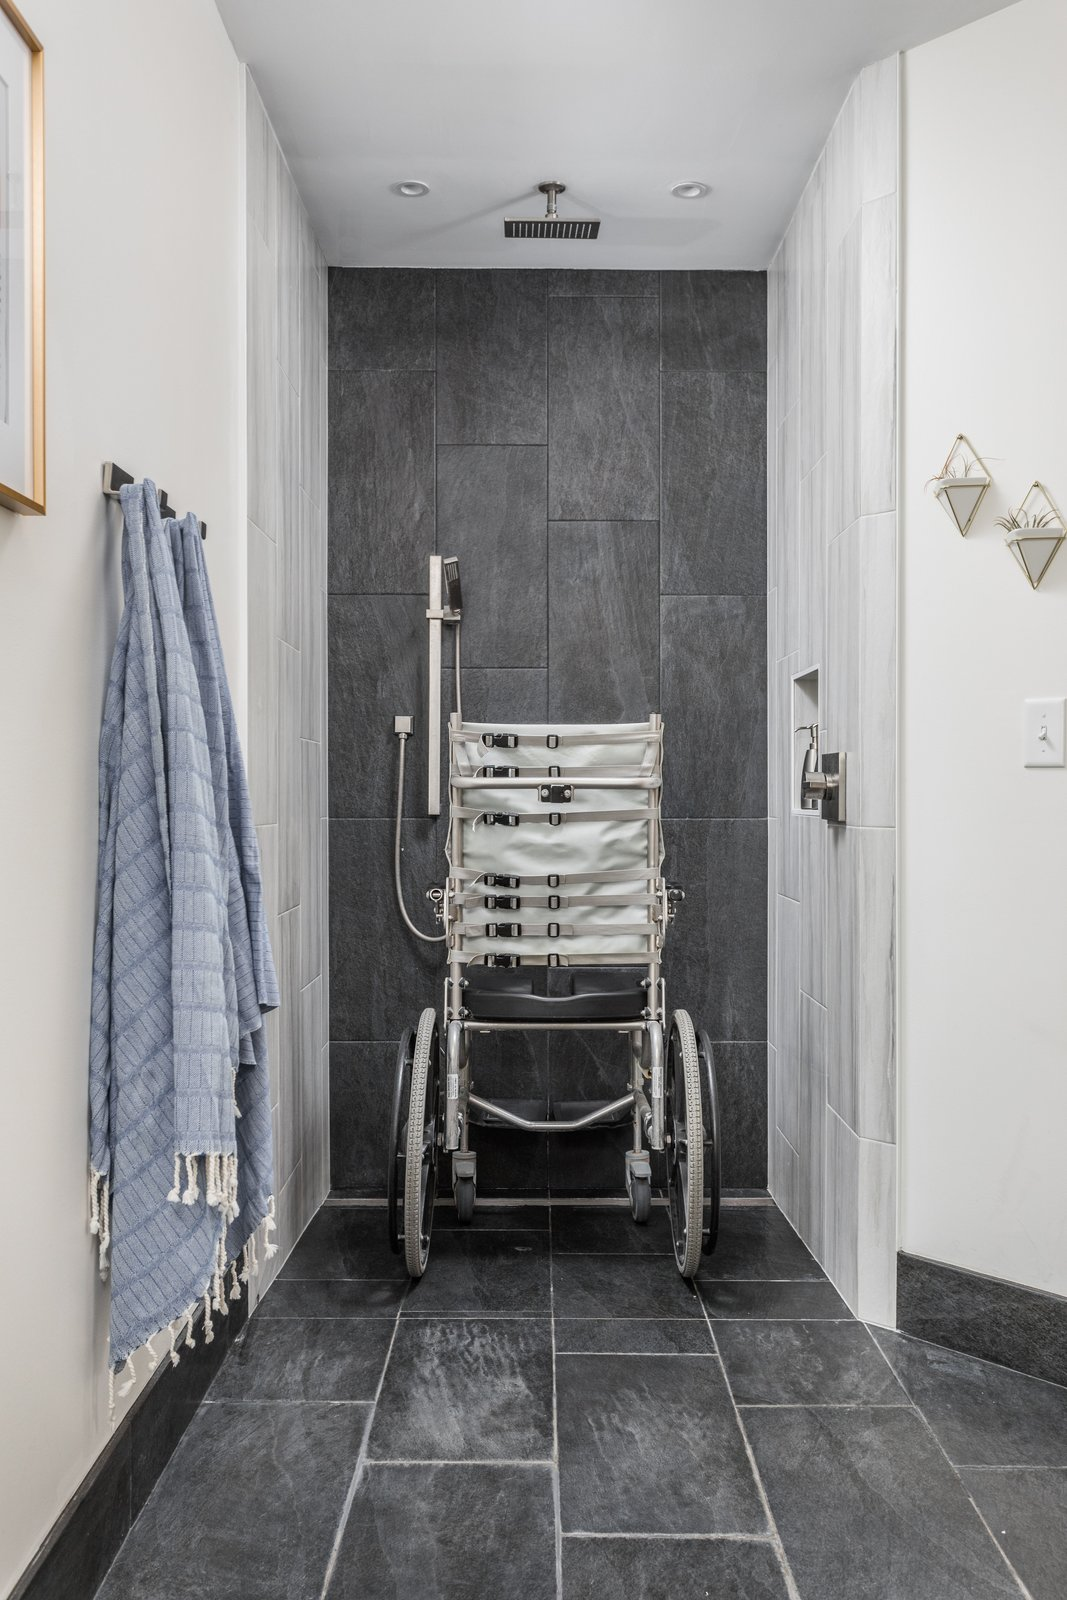 who-said-accessibility-needs-to-be-dorky-handicap-folks-spend-a-considerable-amount-of-time-at-home-and-often-the-stigma-is-that-their-homes-cant-be-beautiful-we-would-love-to-change-that-says-leanne.jpg